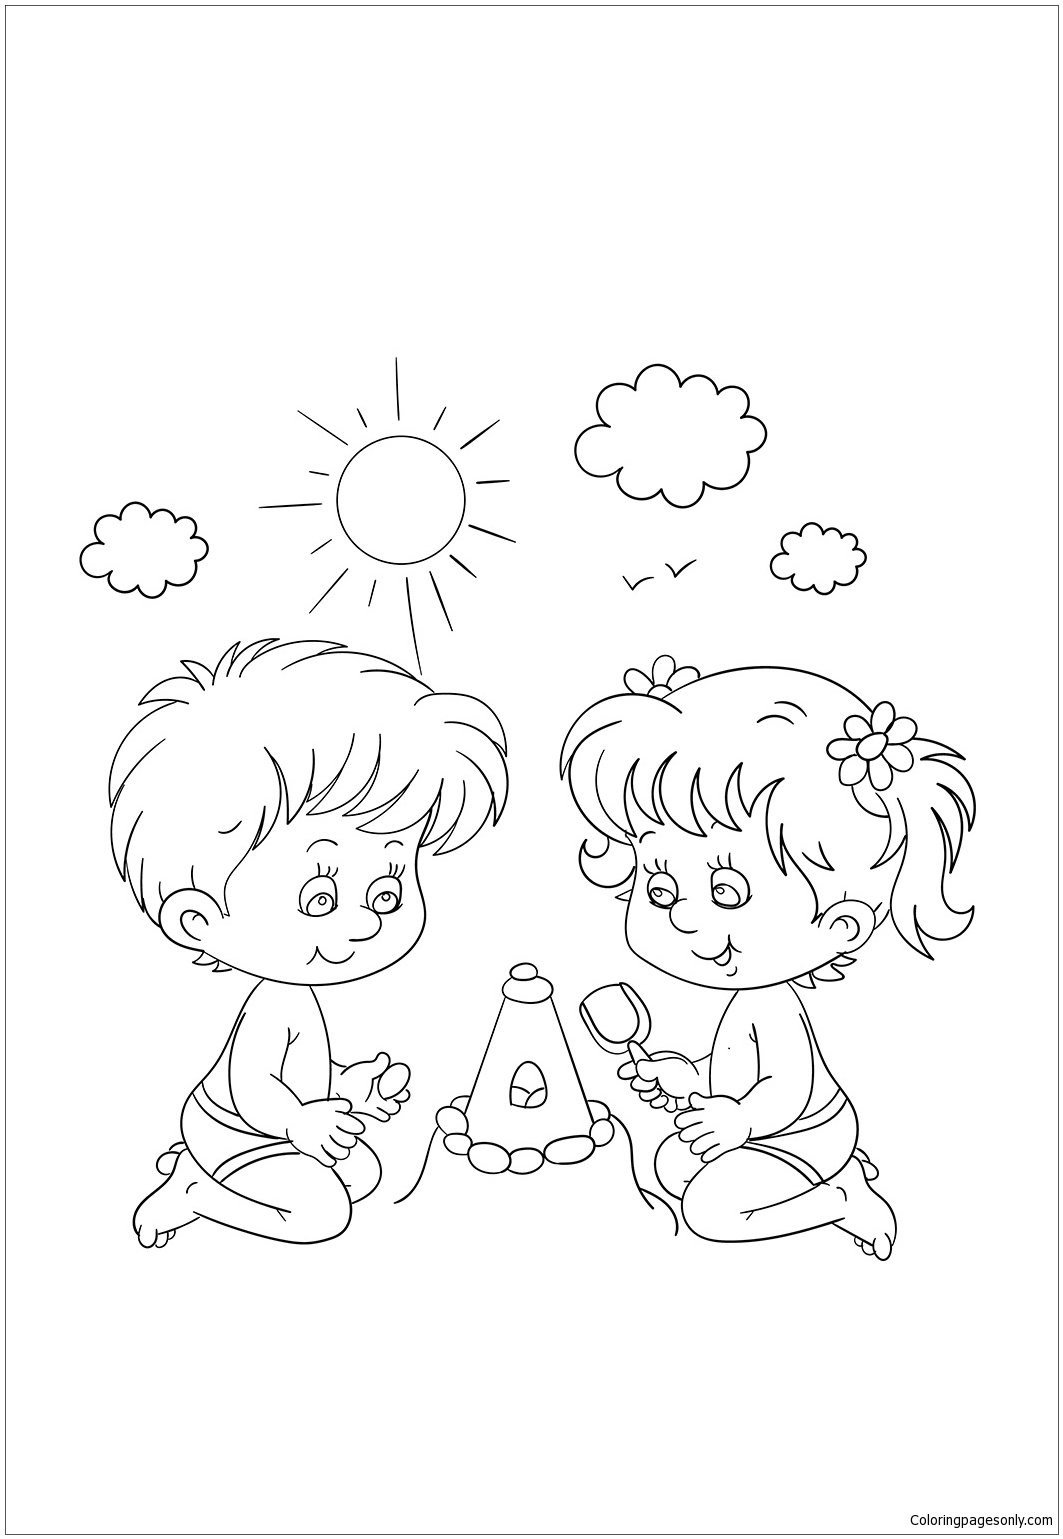 Little boy and girl playing at coloring page free for Little boy and girl coloring pages